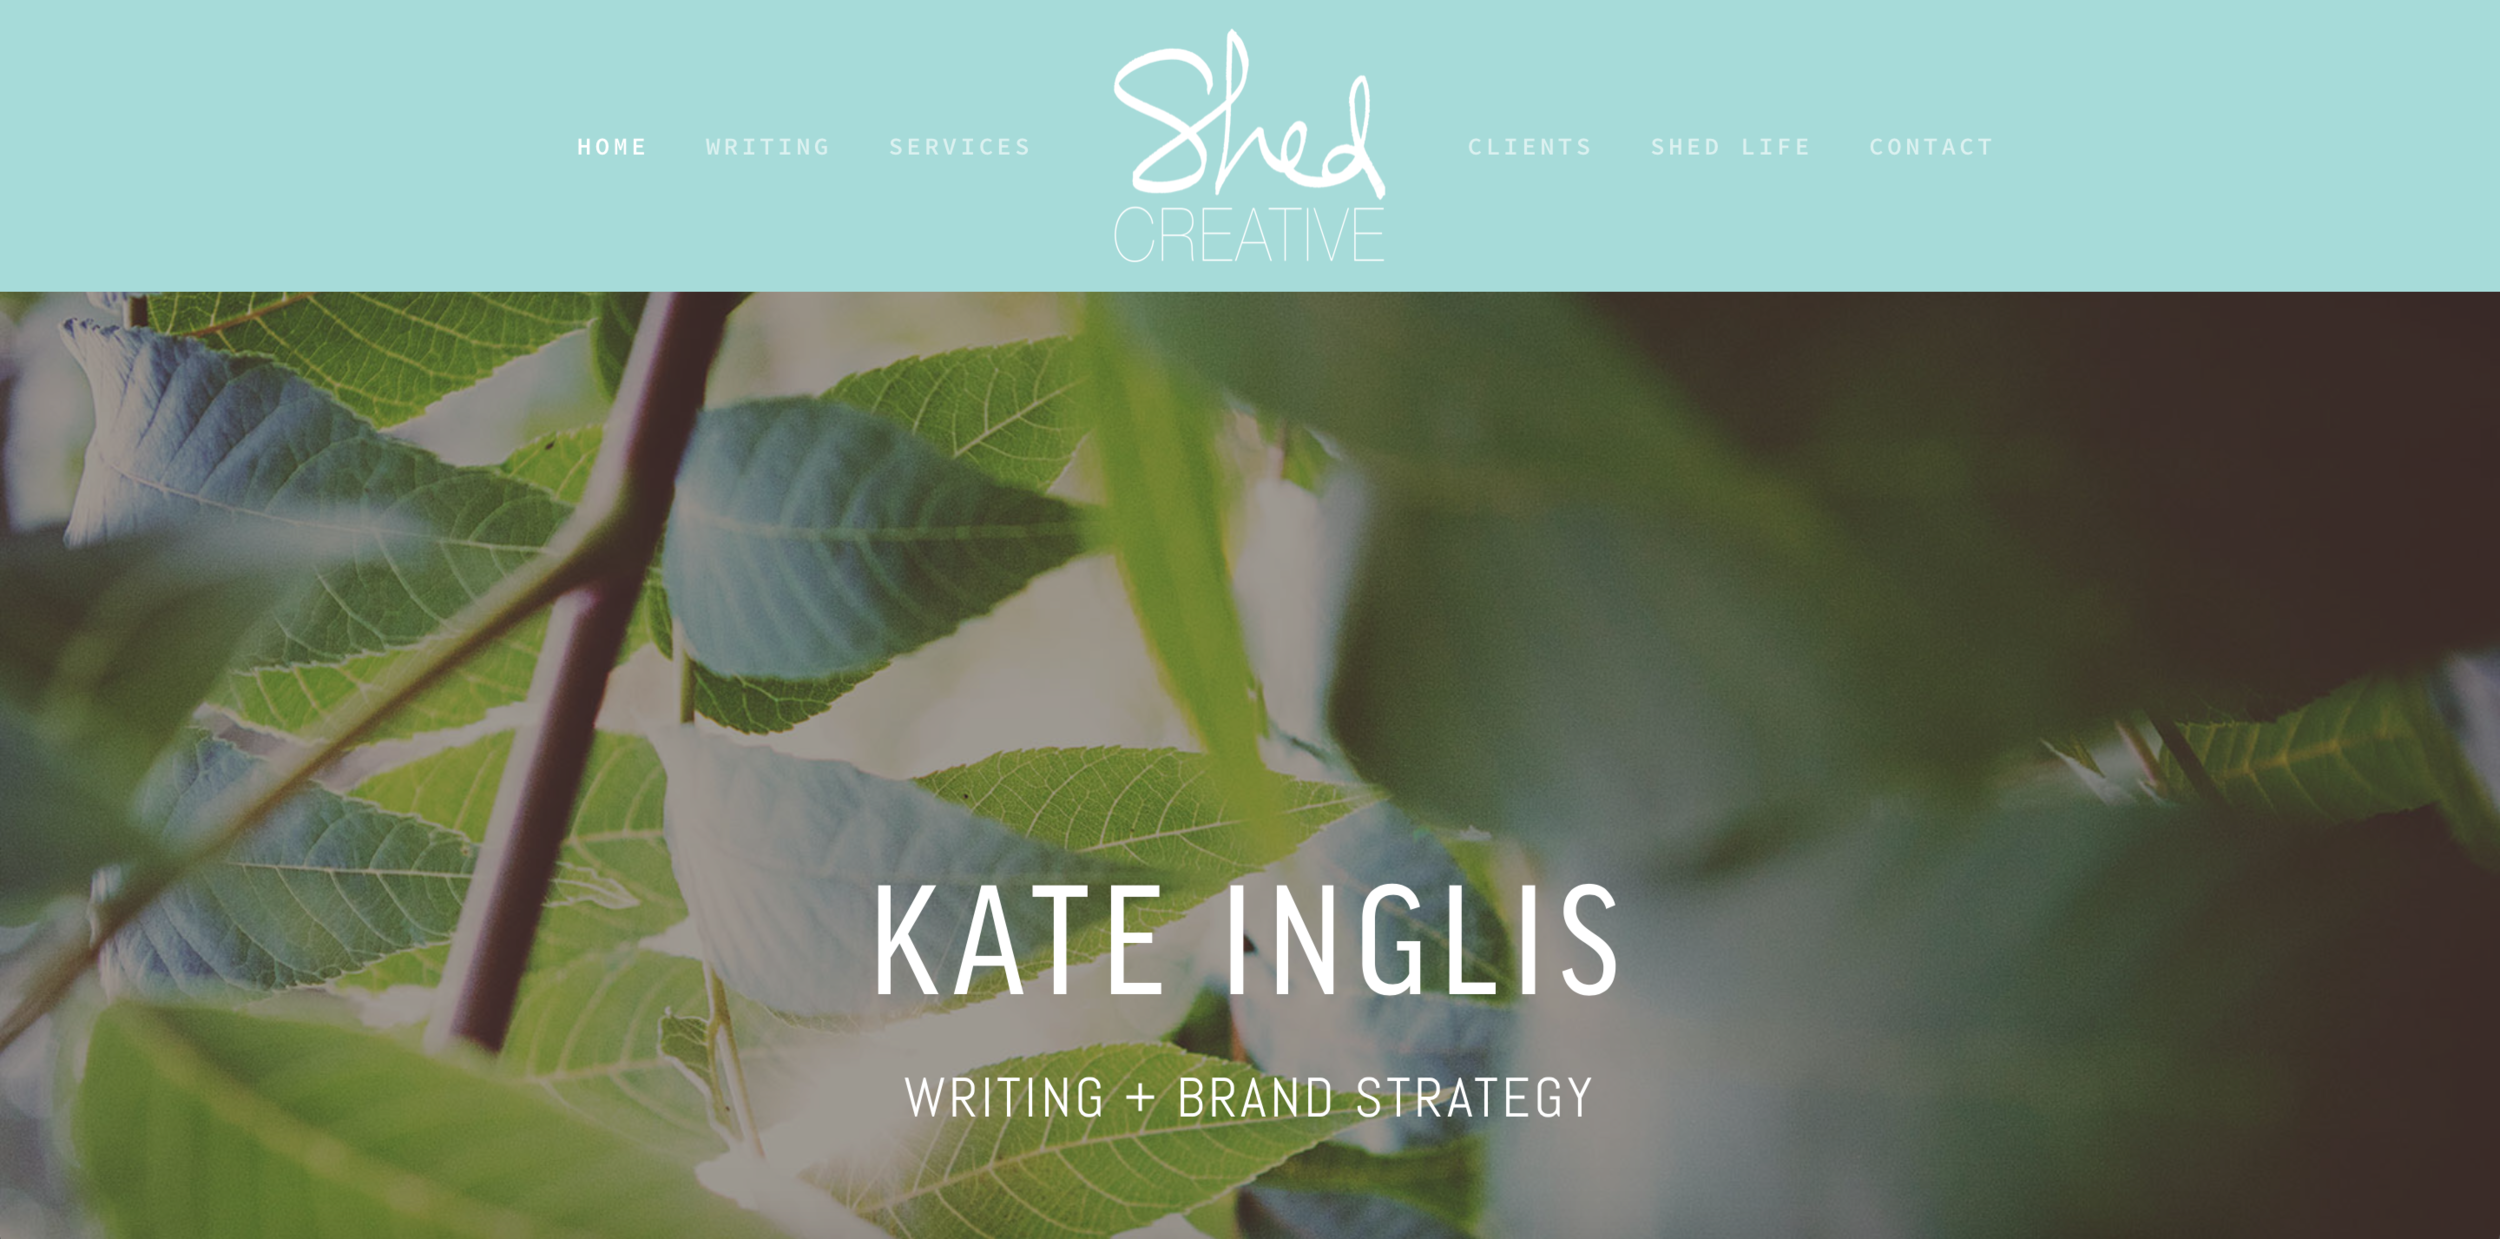 SHED Creative : brand storytelling